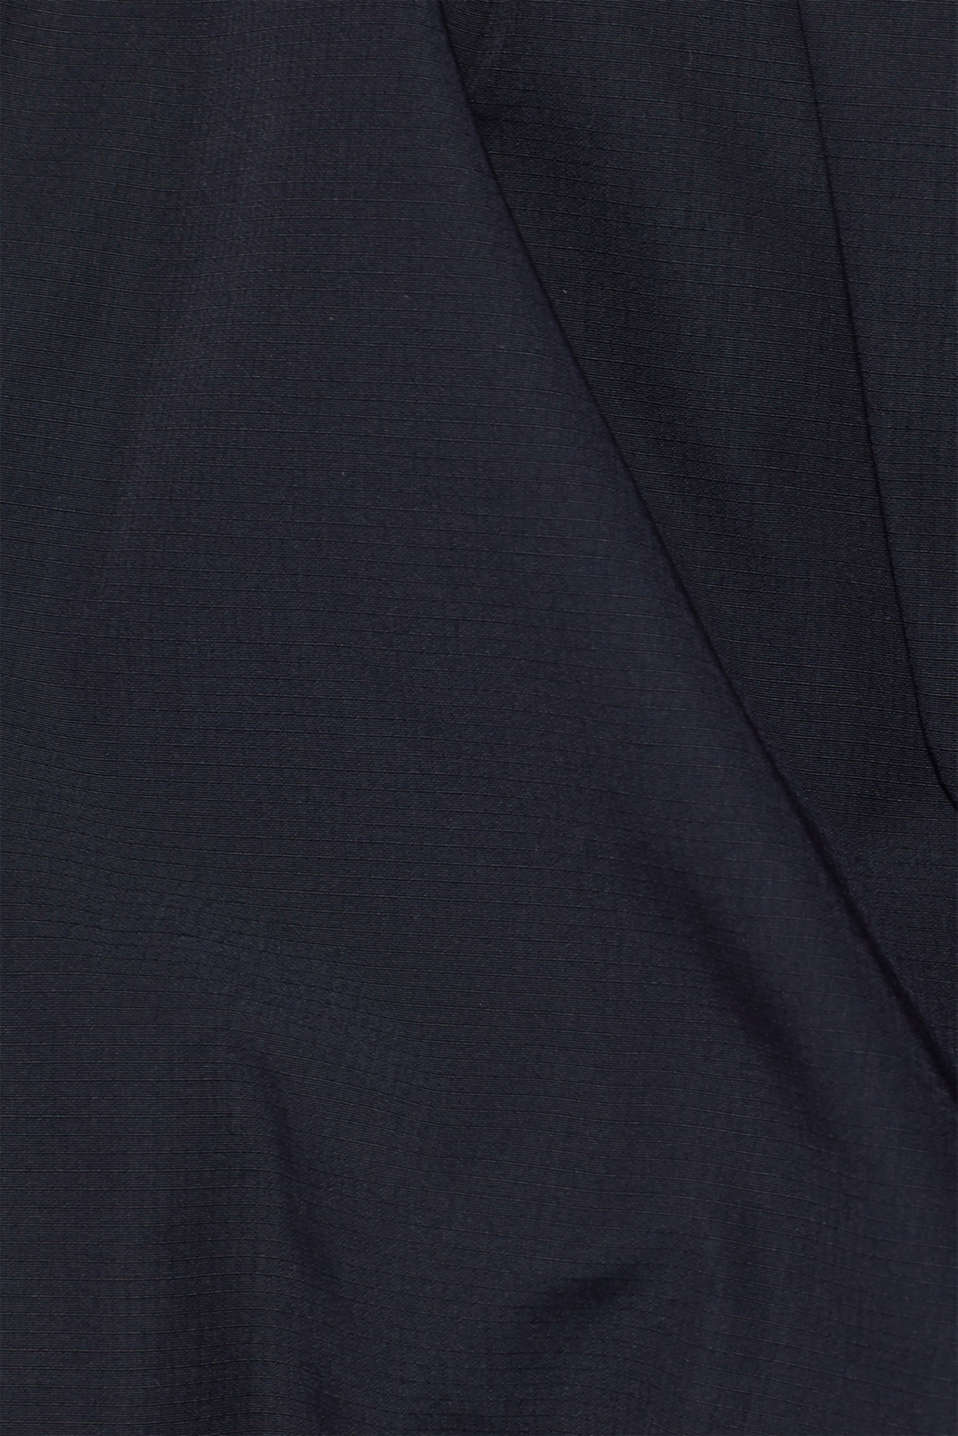 Winter jacket with a faux fur hood, NAVY, detail image number 5